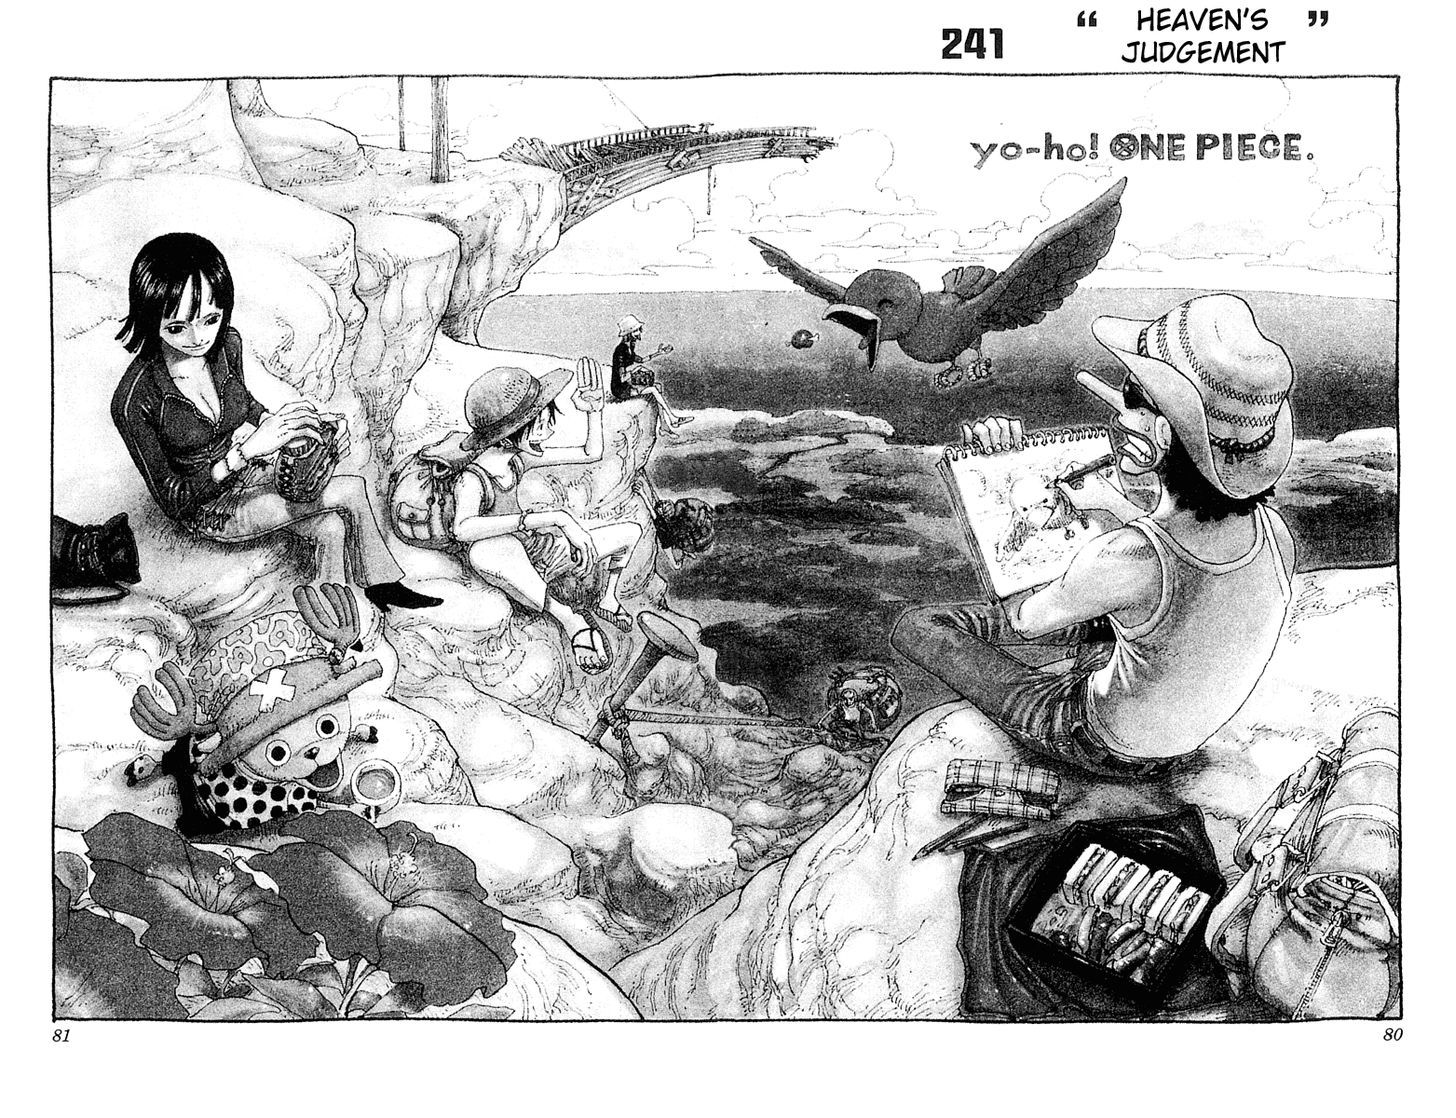 https://im.nineanime.com/comics/pic9/32/96/2589/OnePiece2410370.jpg Page 1